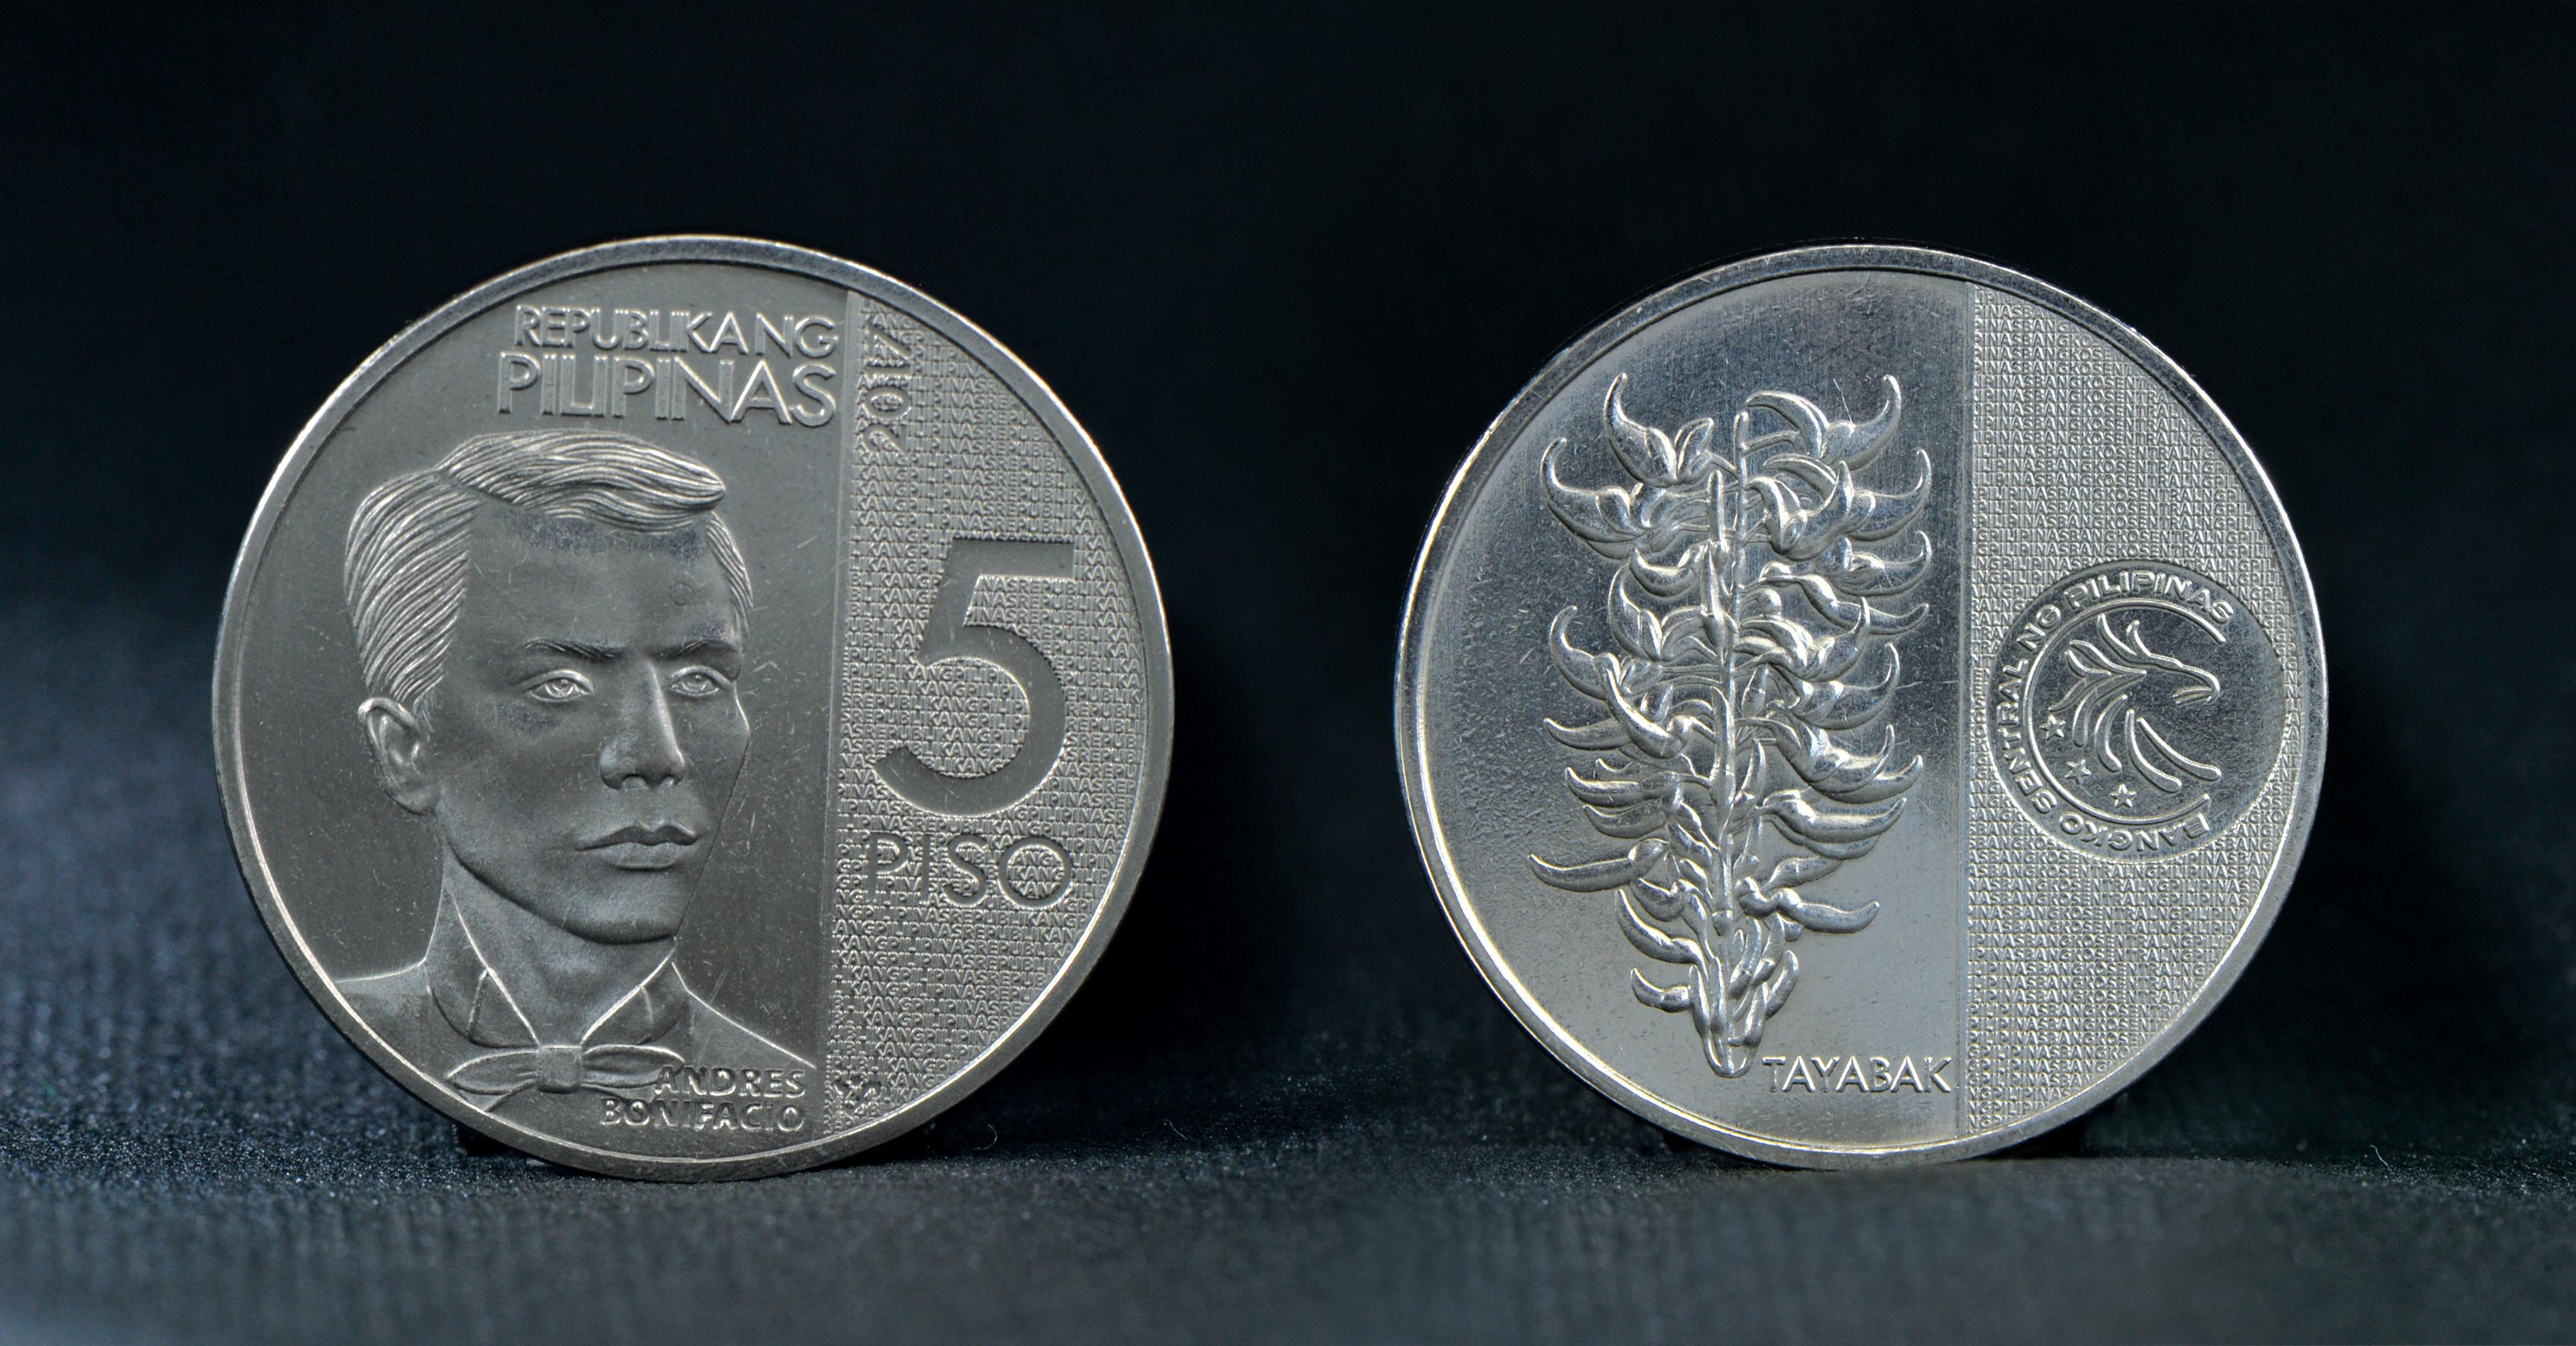 BSP Releases New P5 Coin To Honor Andres Bonifacio